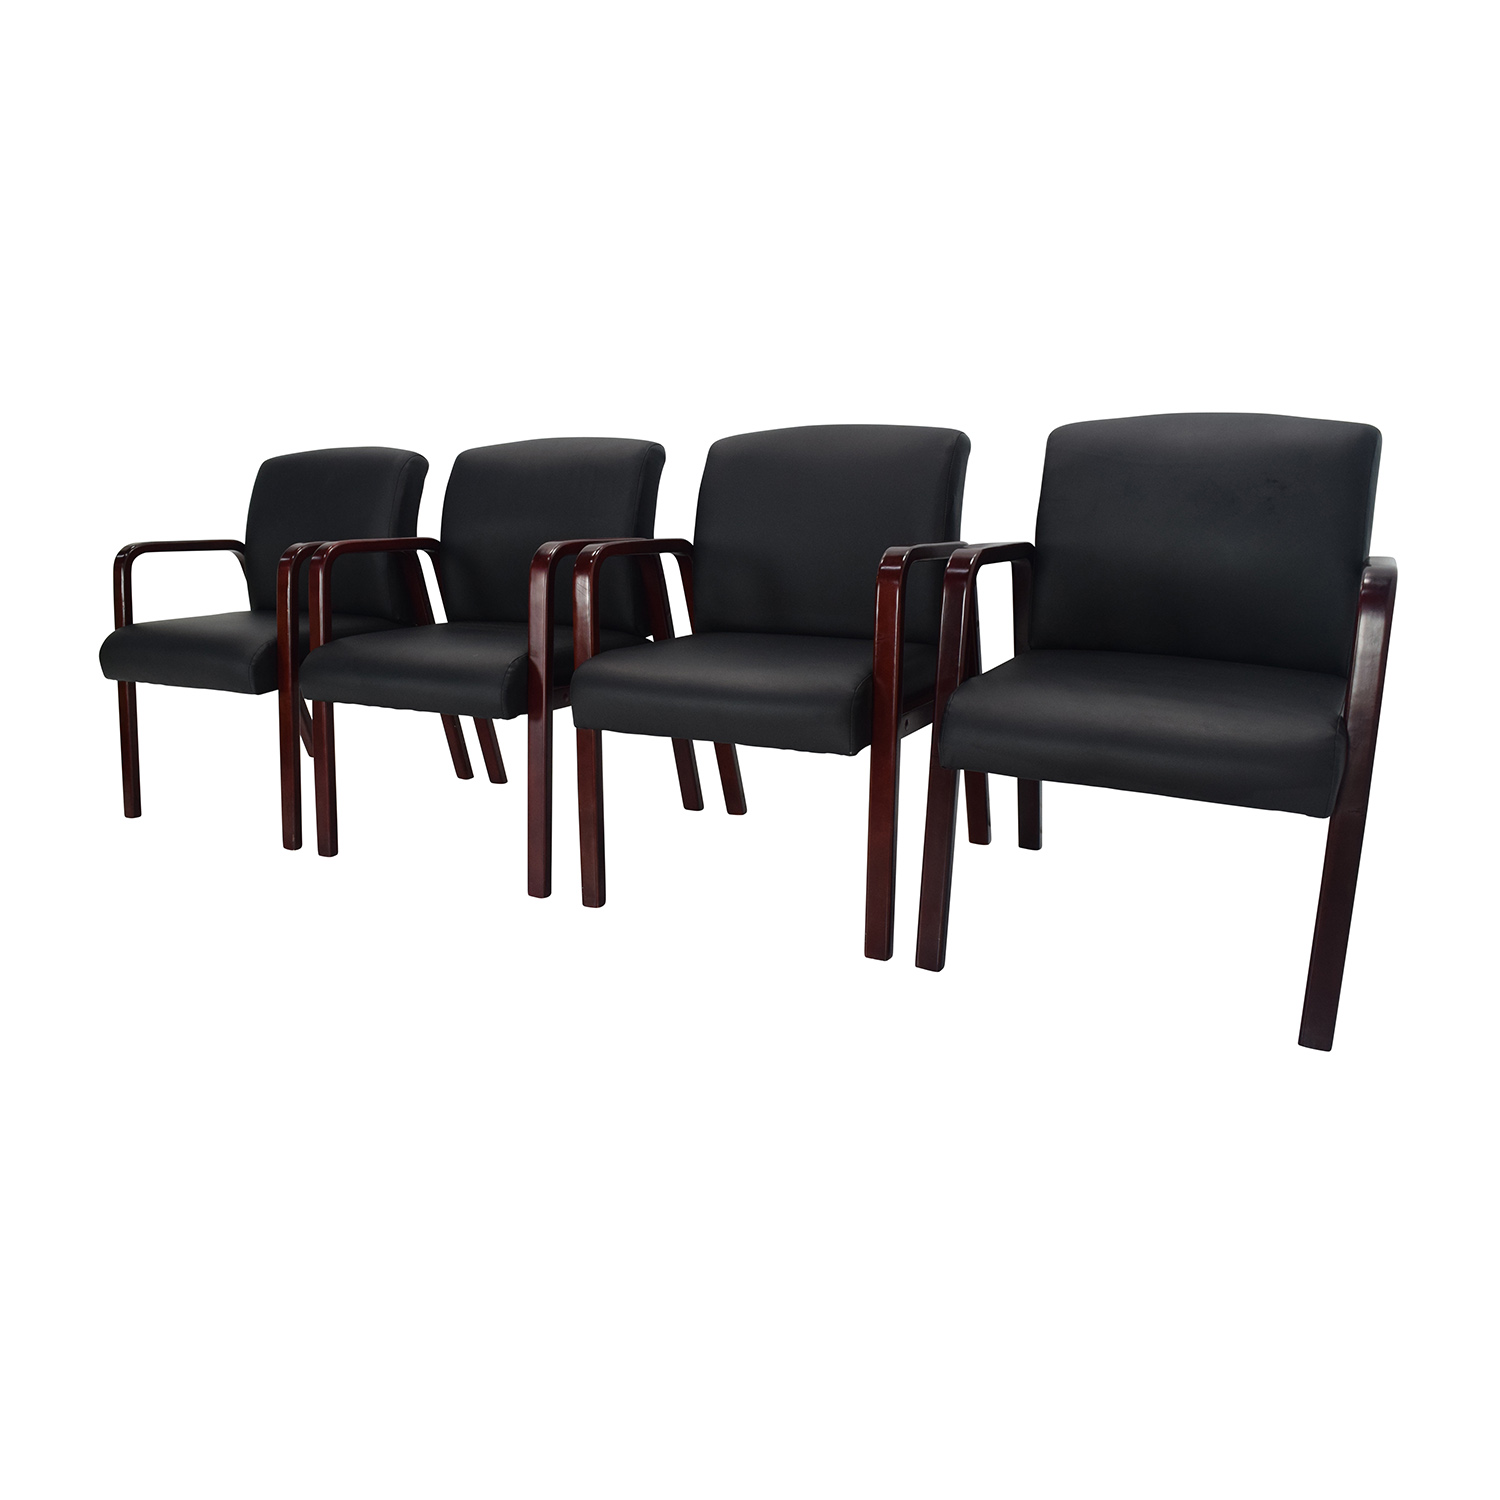 Office Chairs Office Max 89 Off Office Max Set Of 4 Office Chairs Chairs